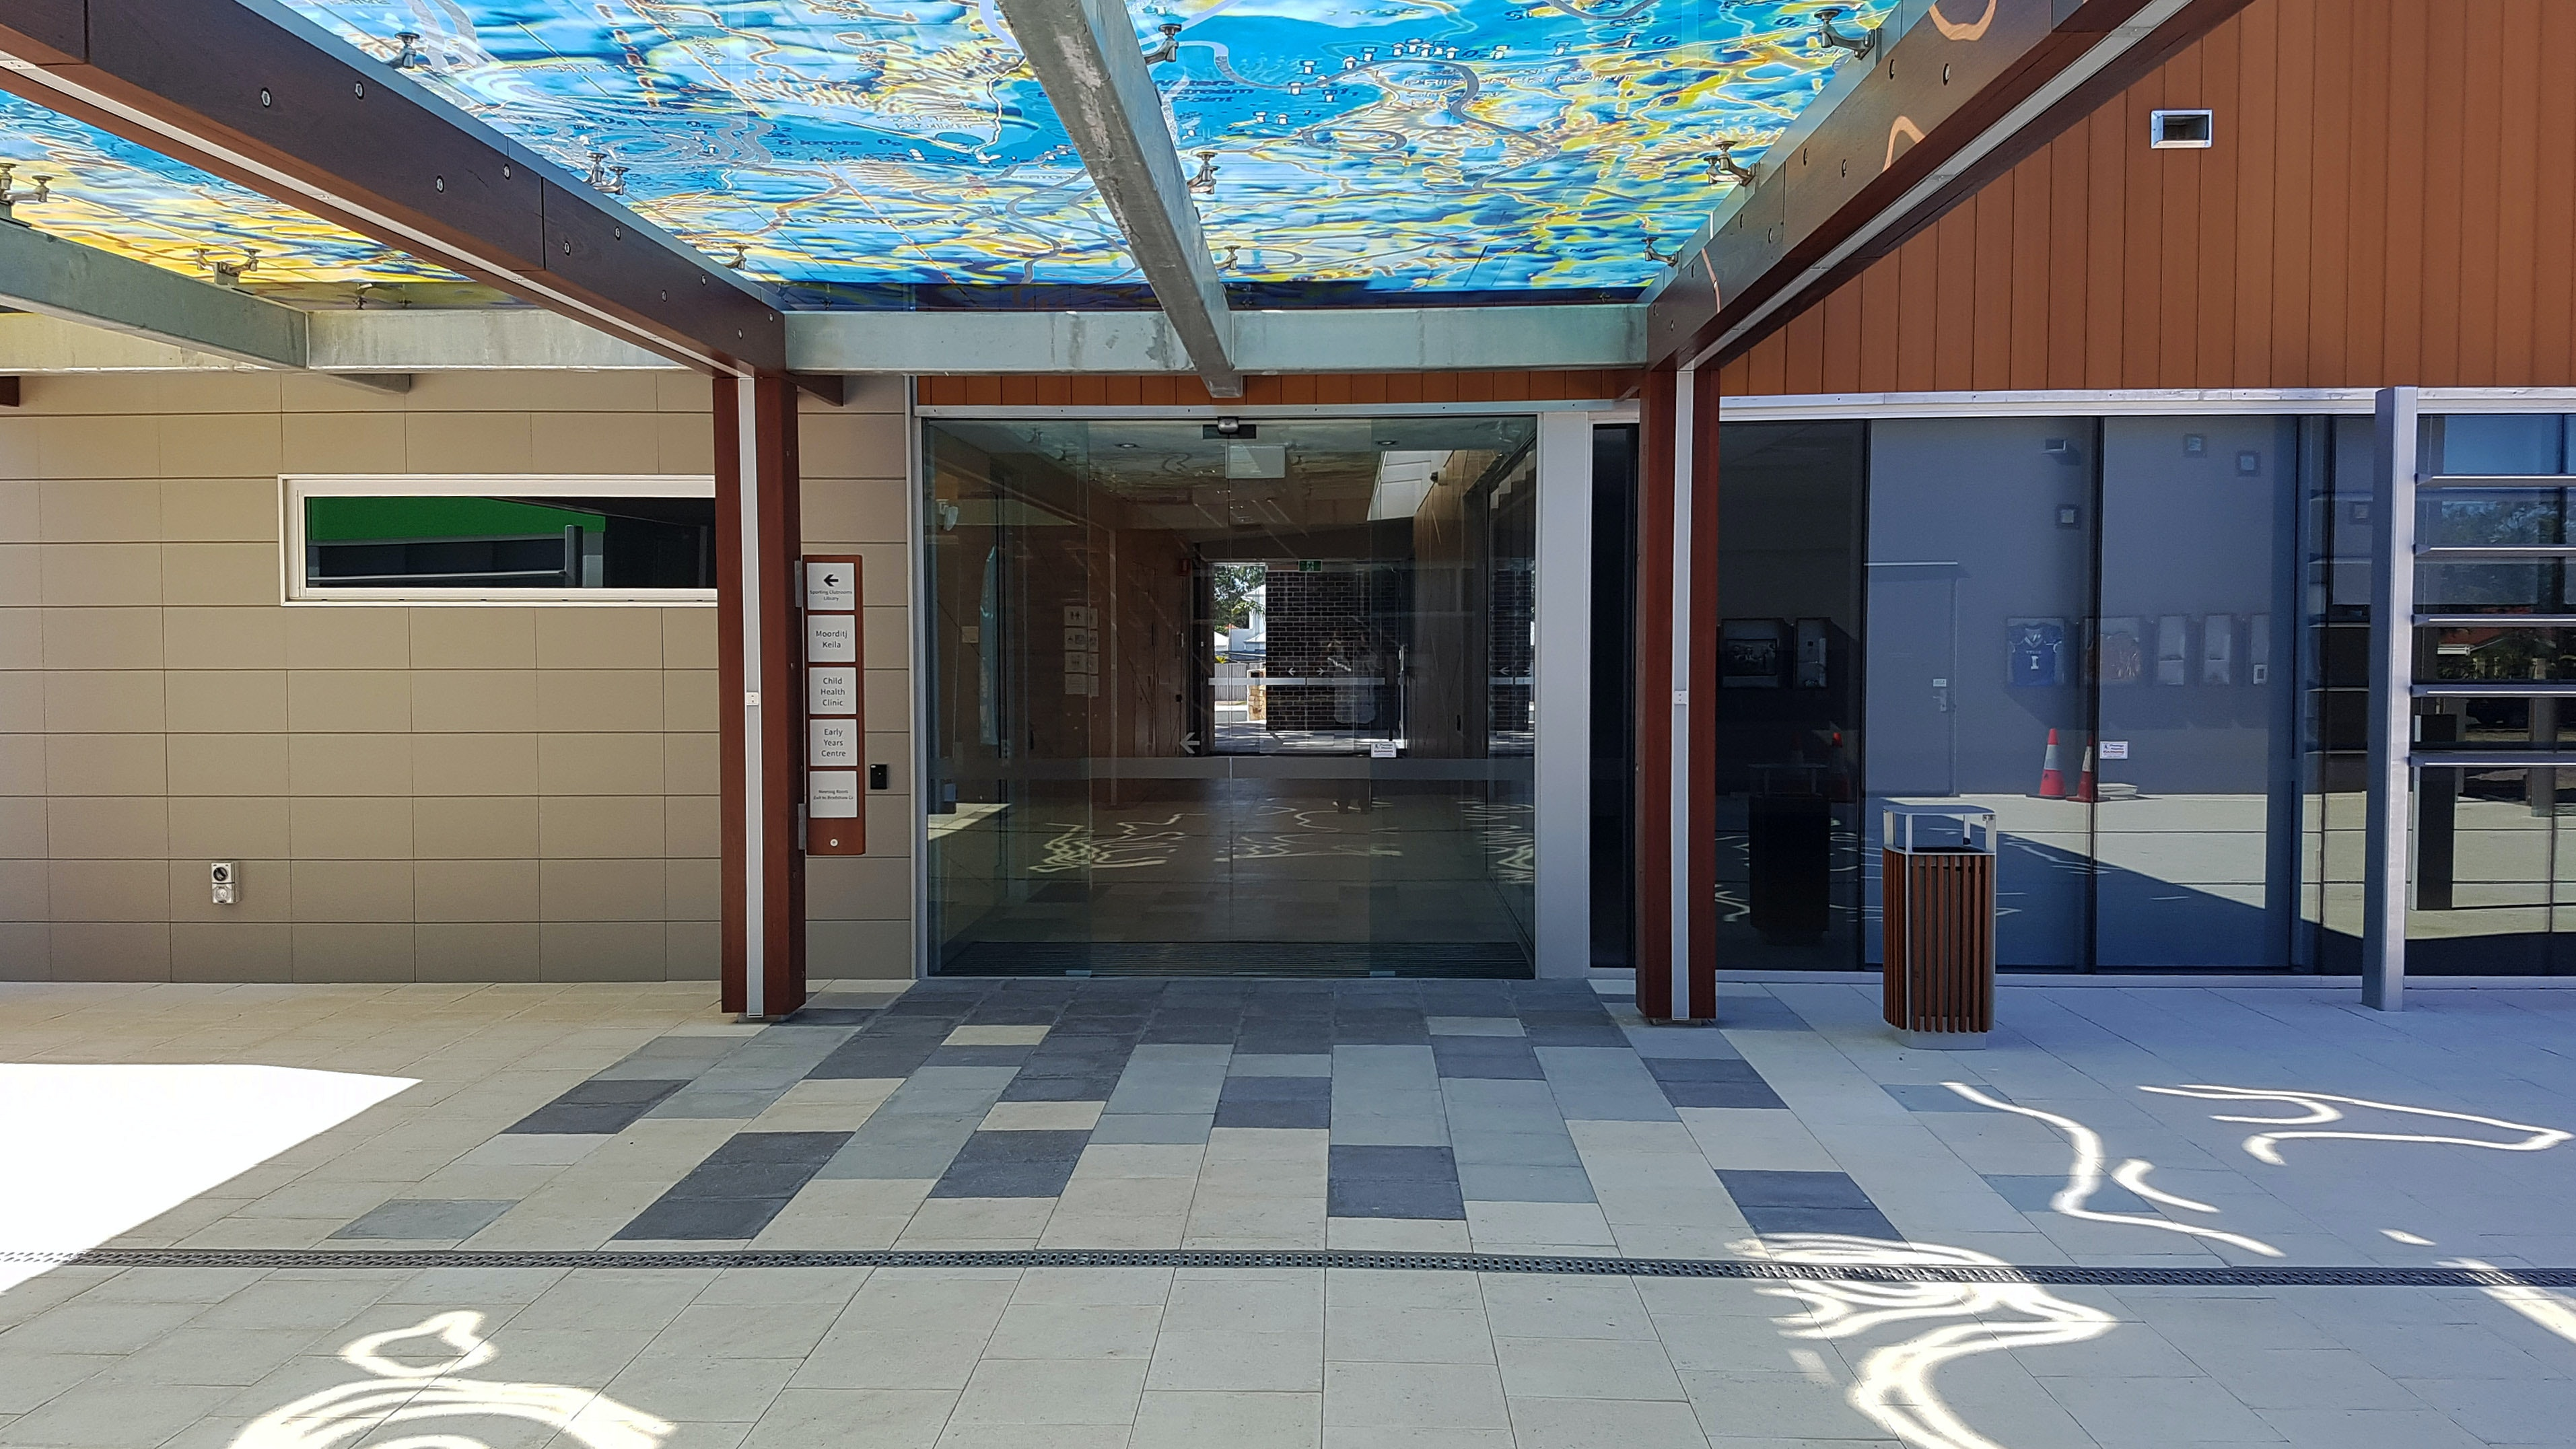 Manning Community Hub - Ice, Greystone & Charcoal Coral Pavers